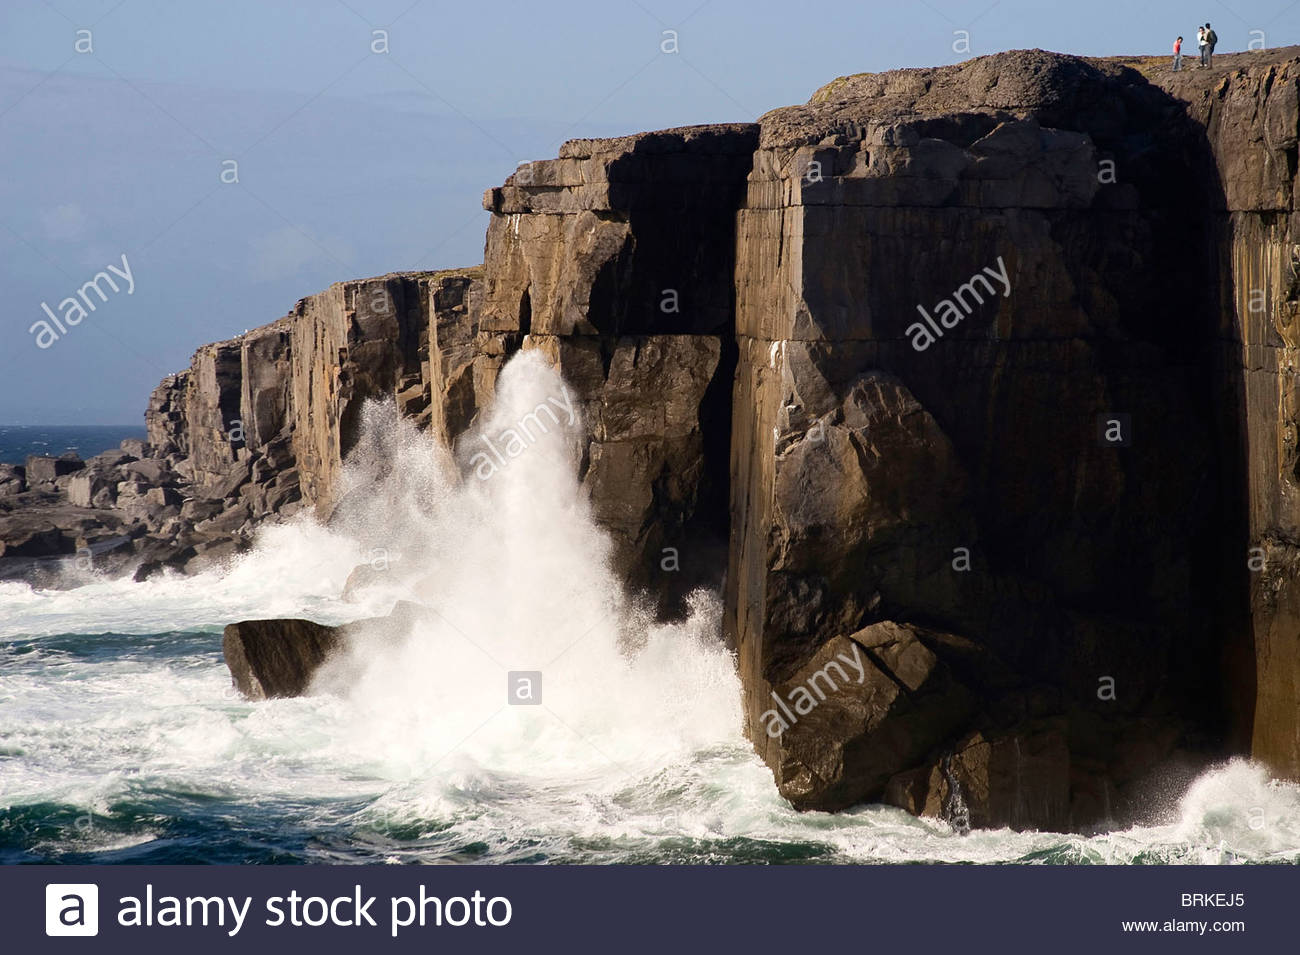 Waves crashing against rocks at The Burren, County Clare - Stock Image